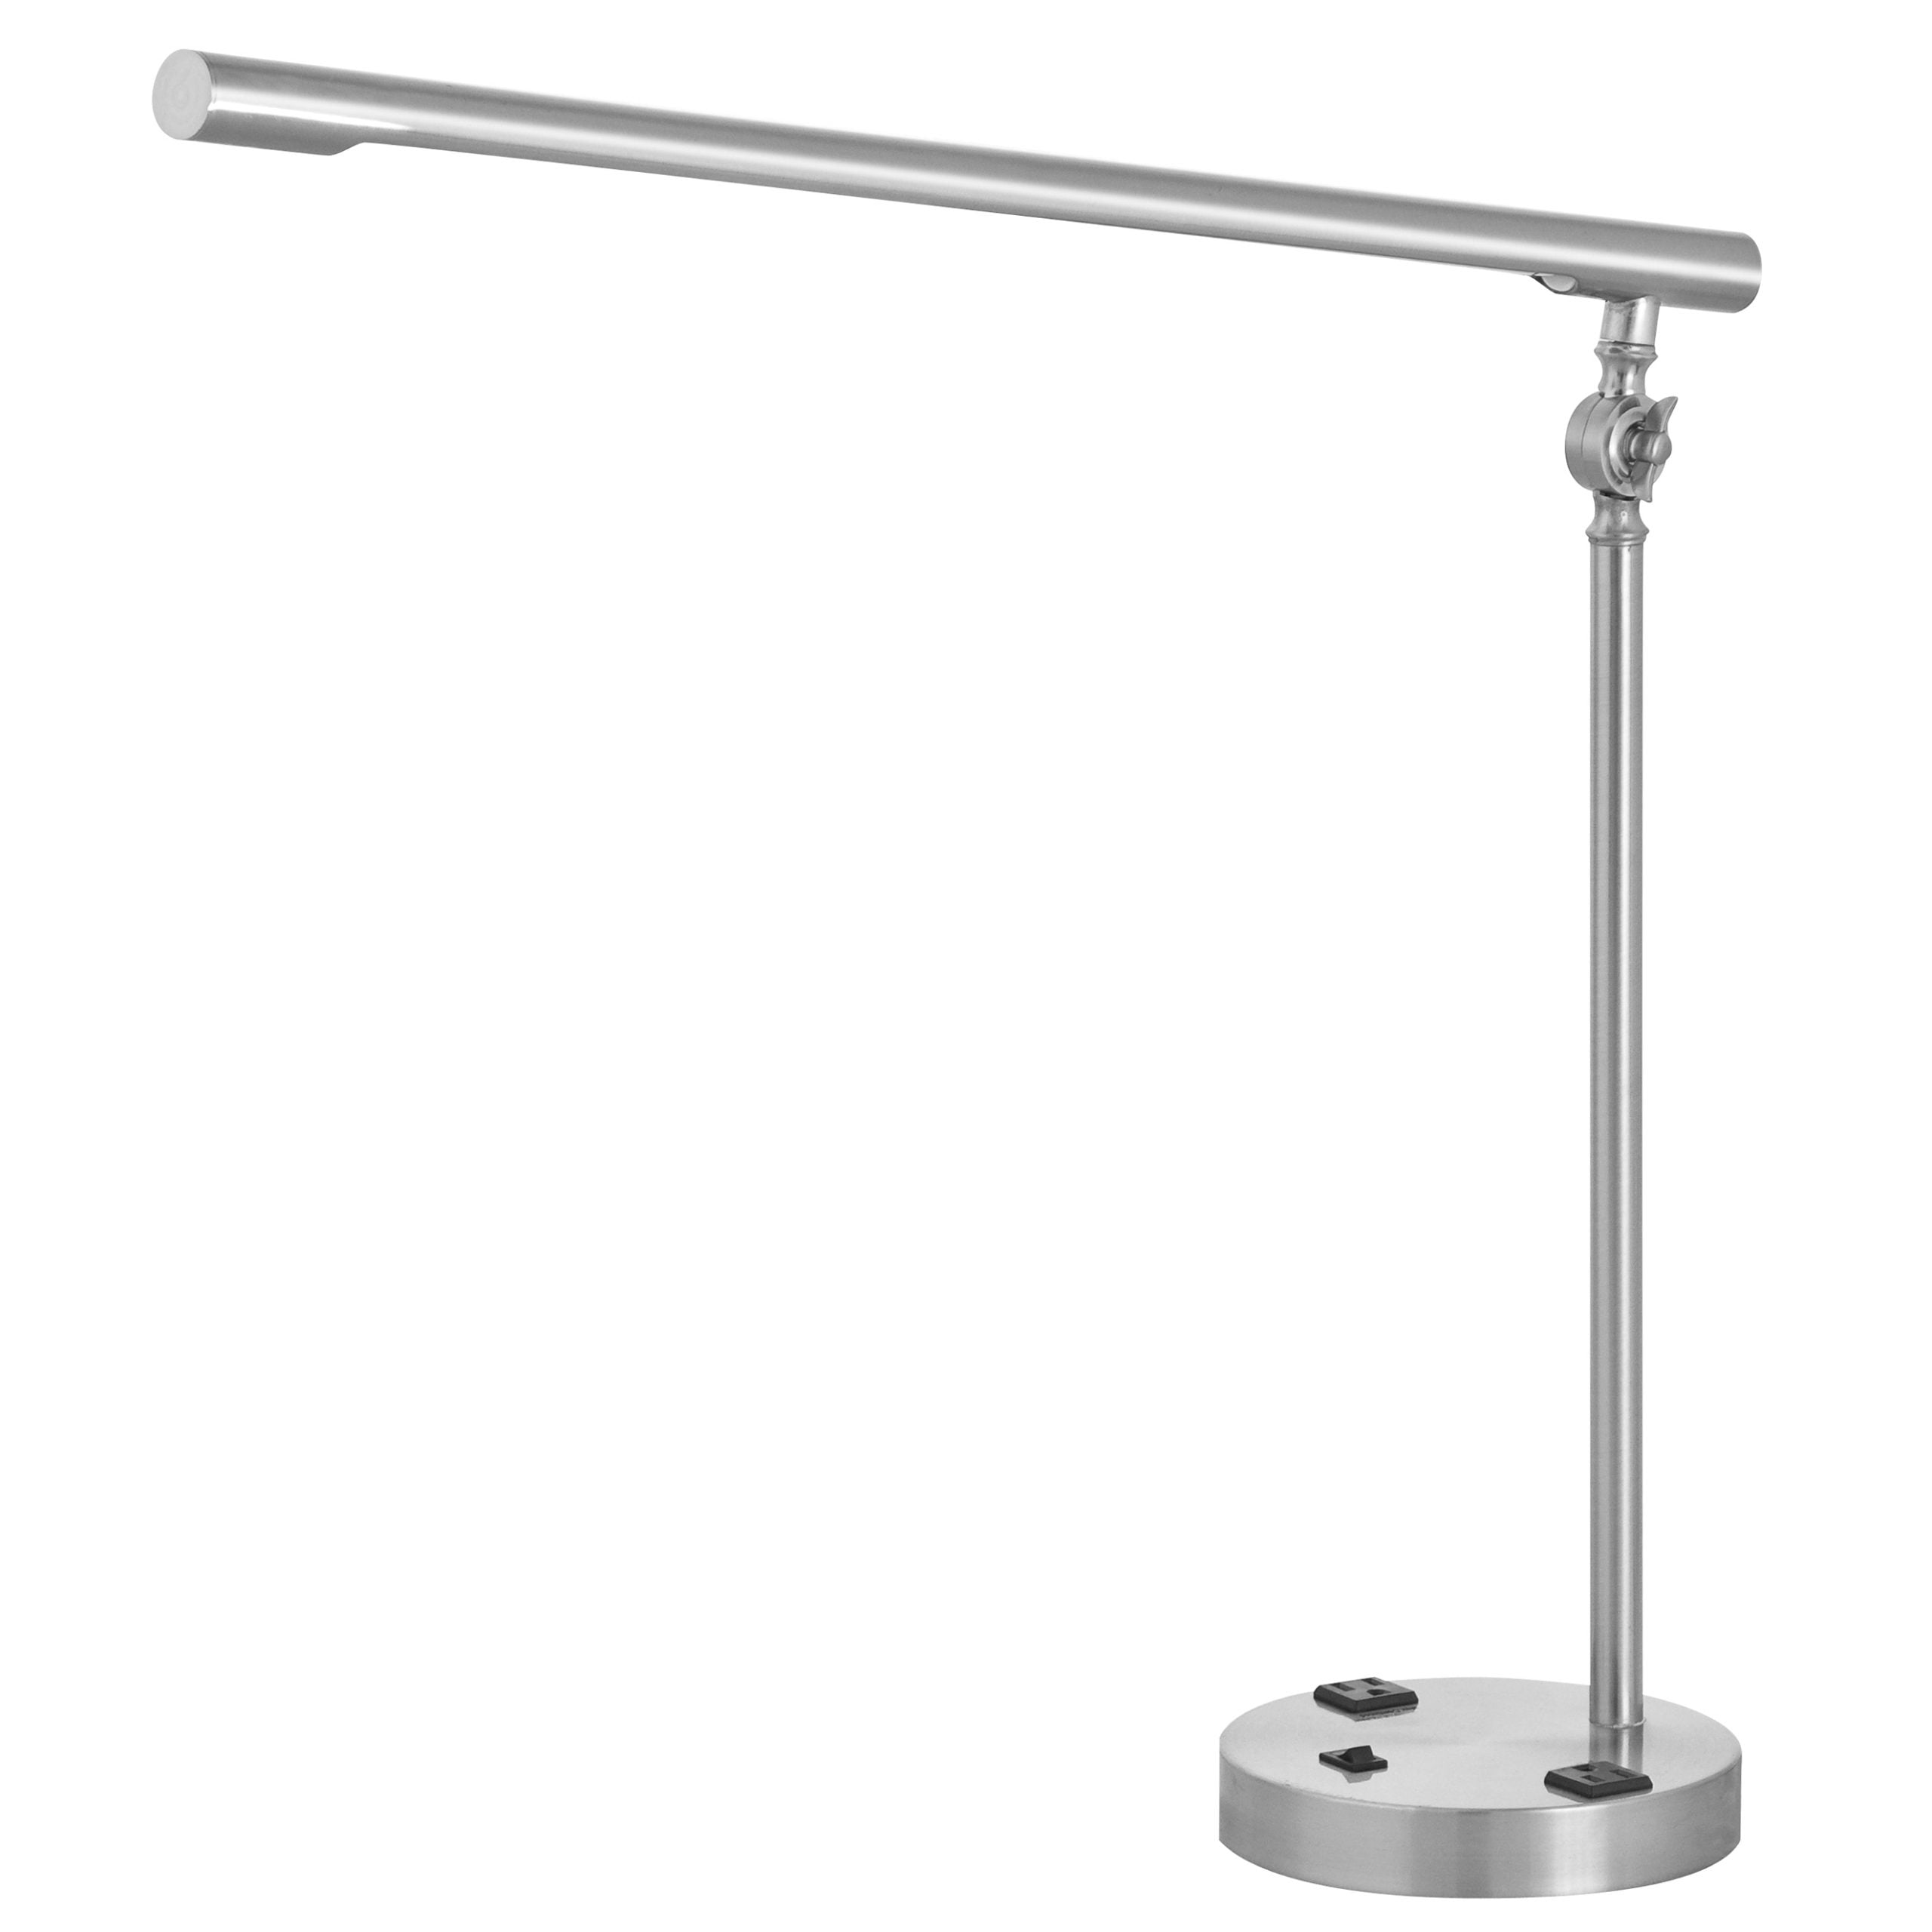 Prestige Desk Lamp with 2 Outlets